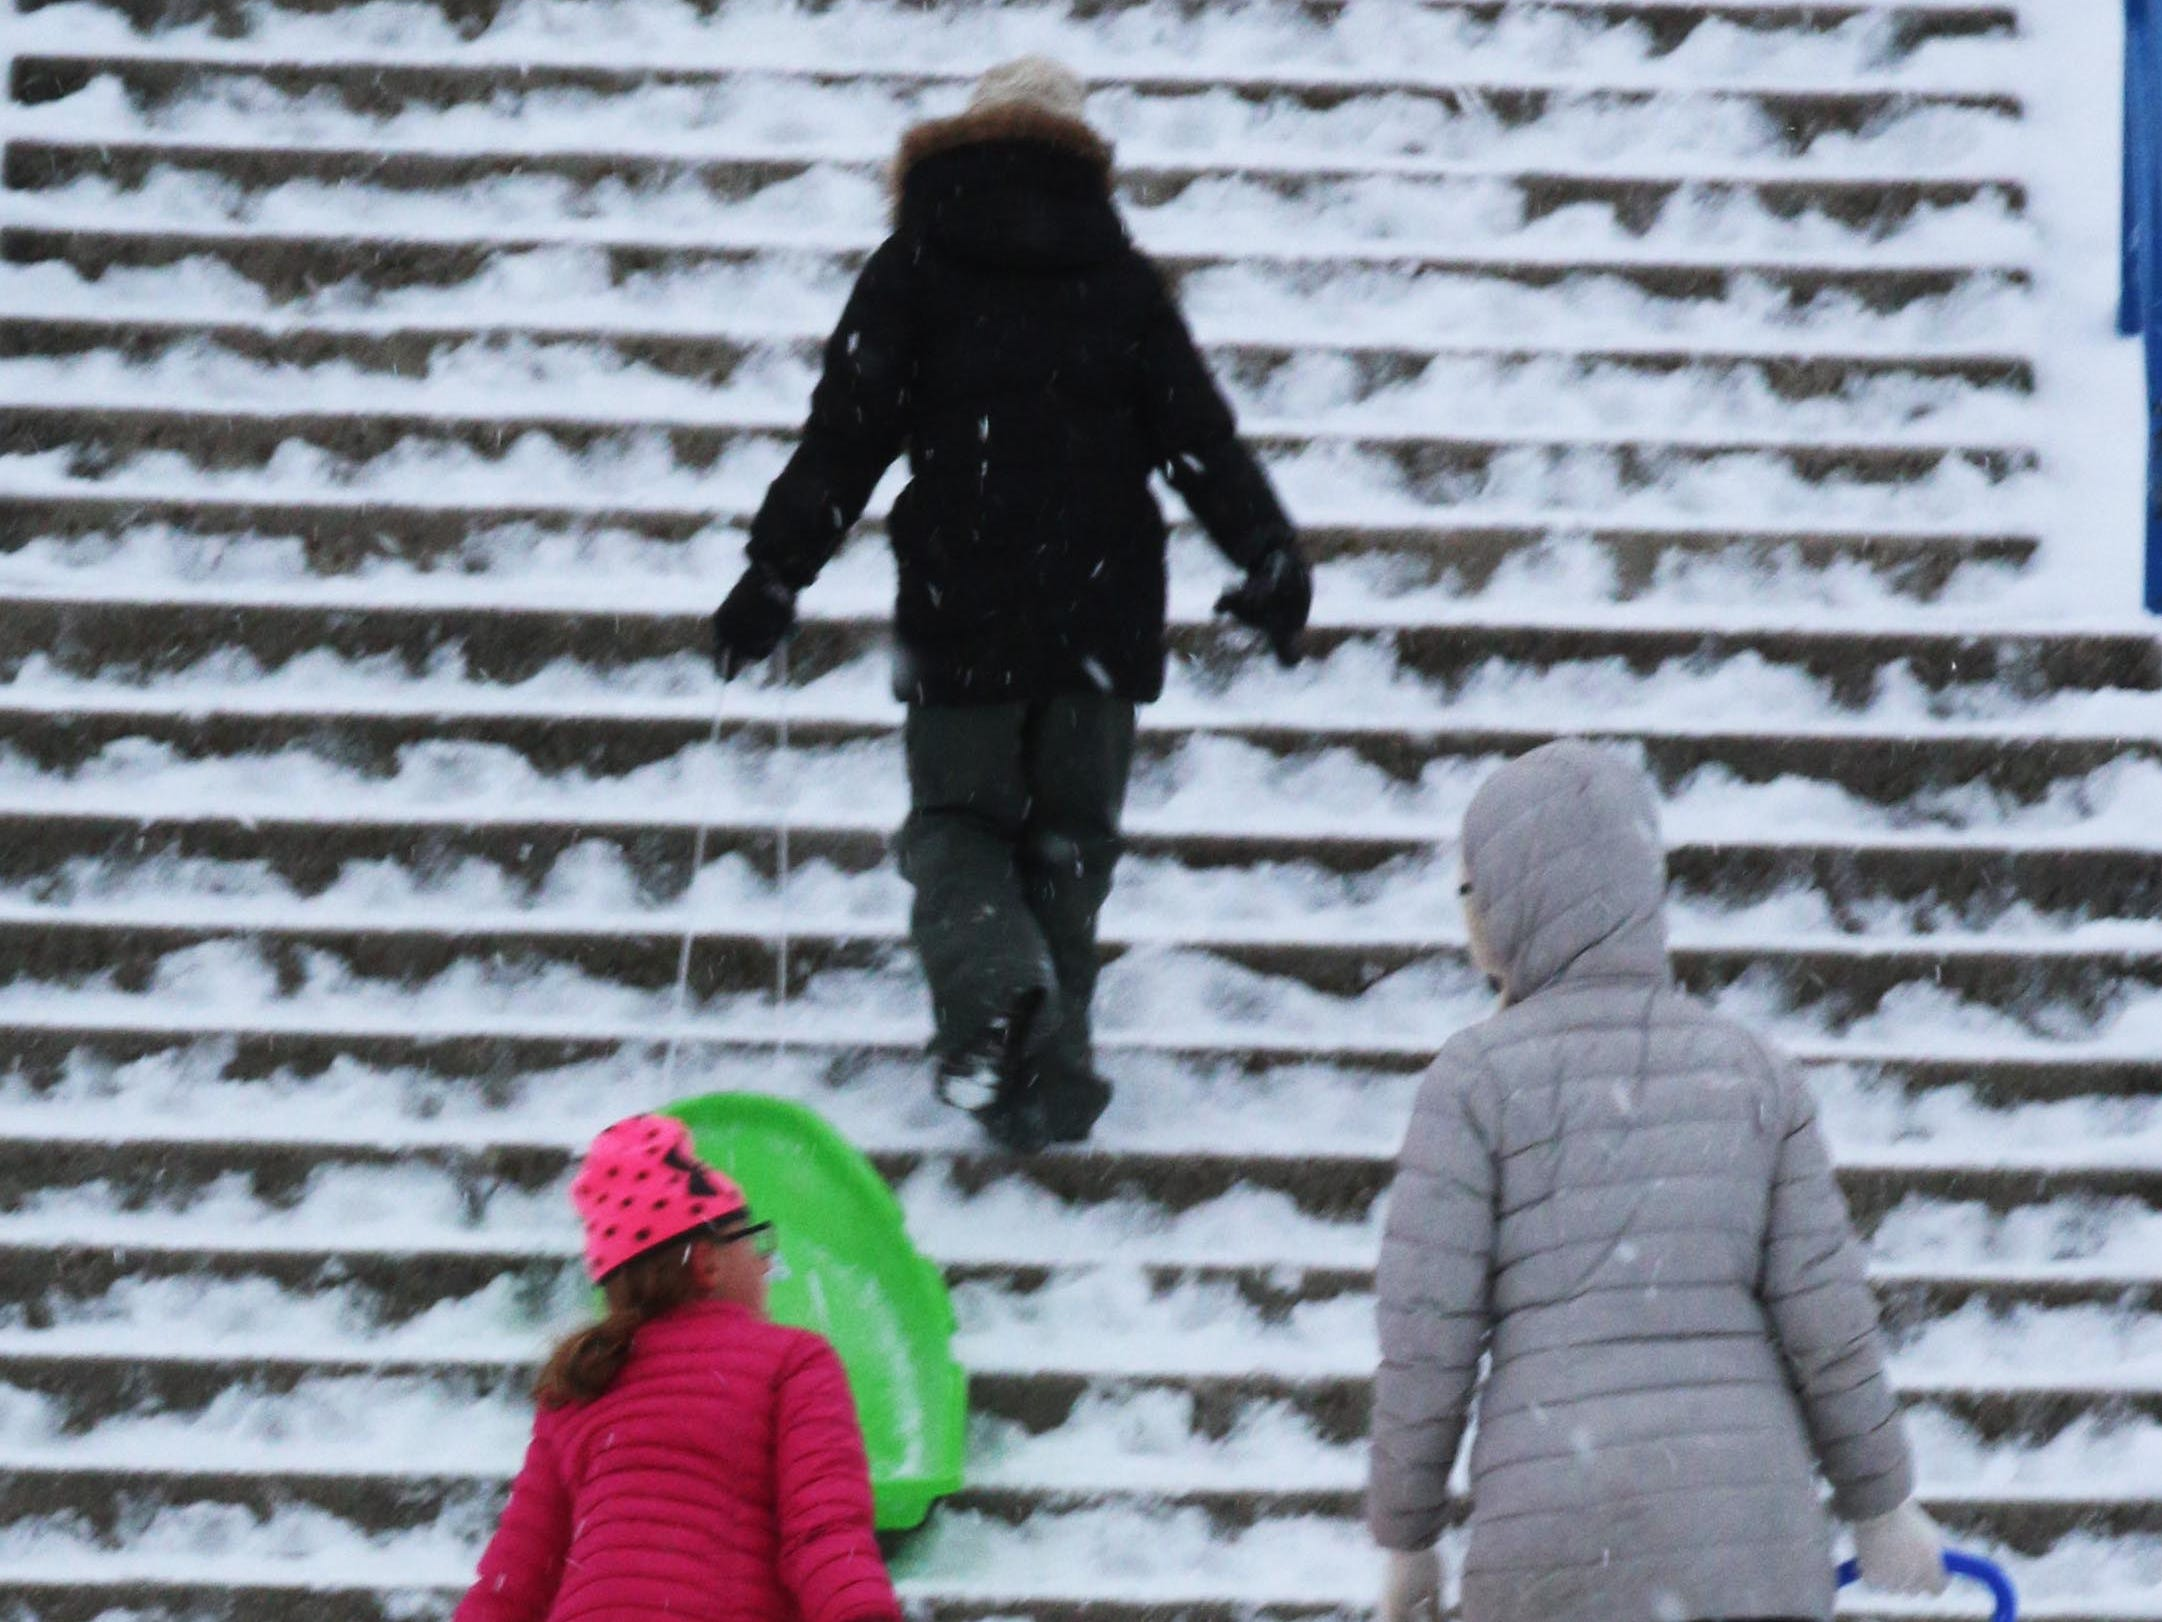 Sledders walk up the stairs at Vollrath Bowl, Wednesday, January 2, 2019, in Sheboygan, Wis.